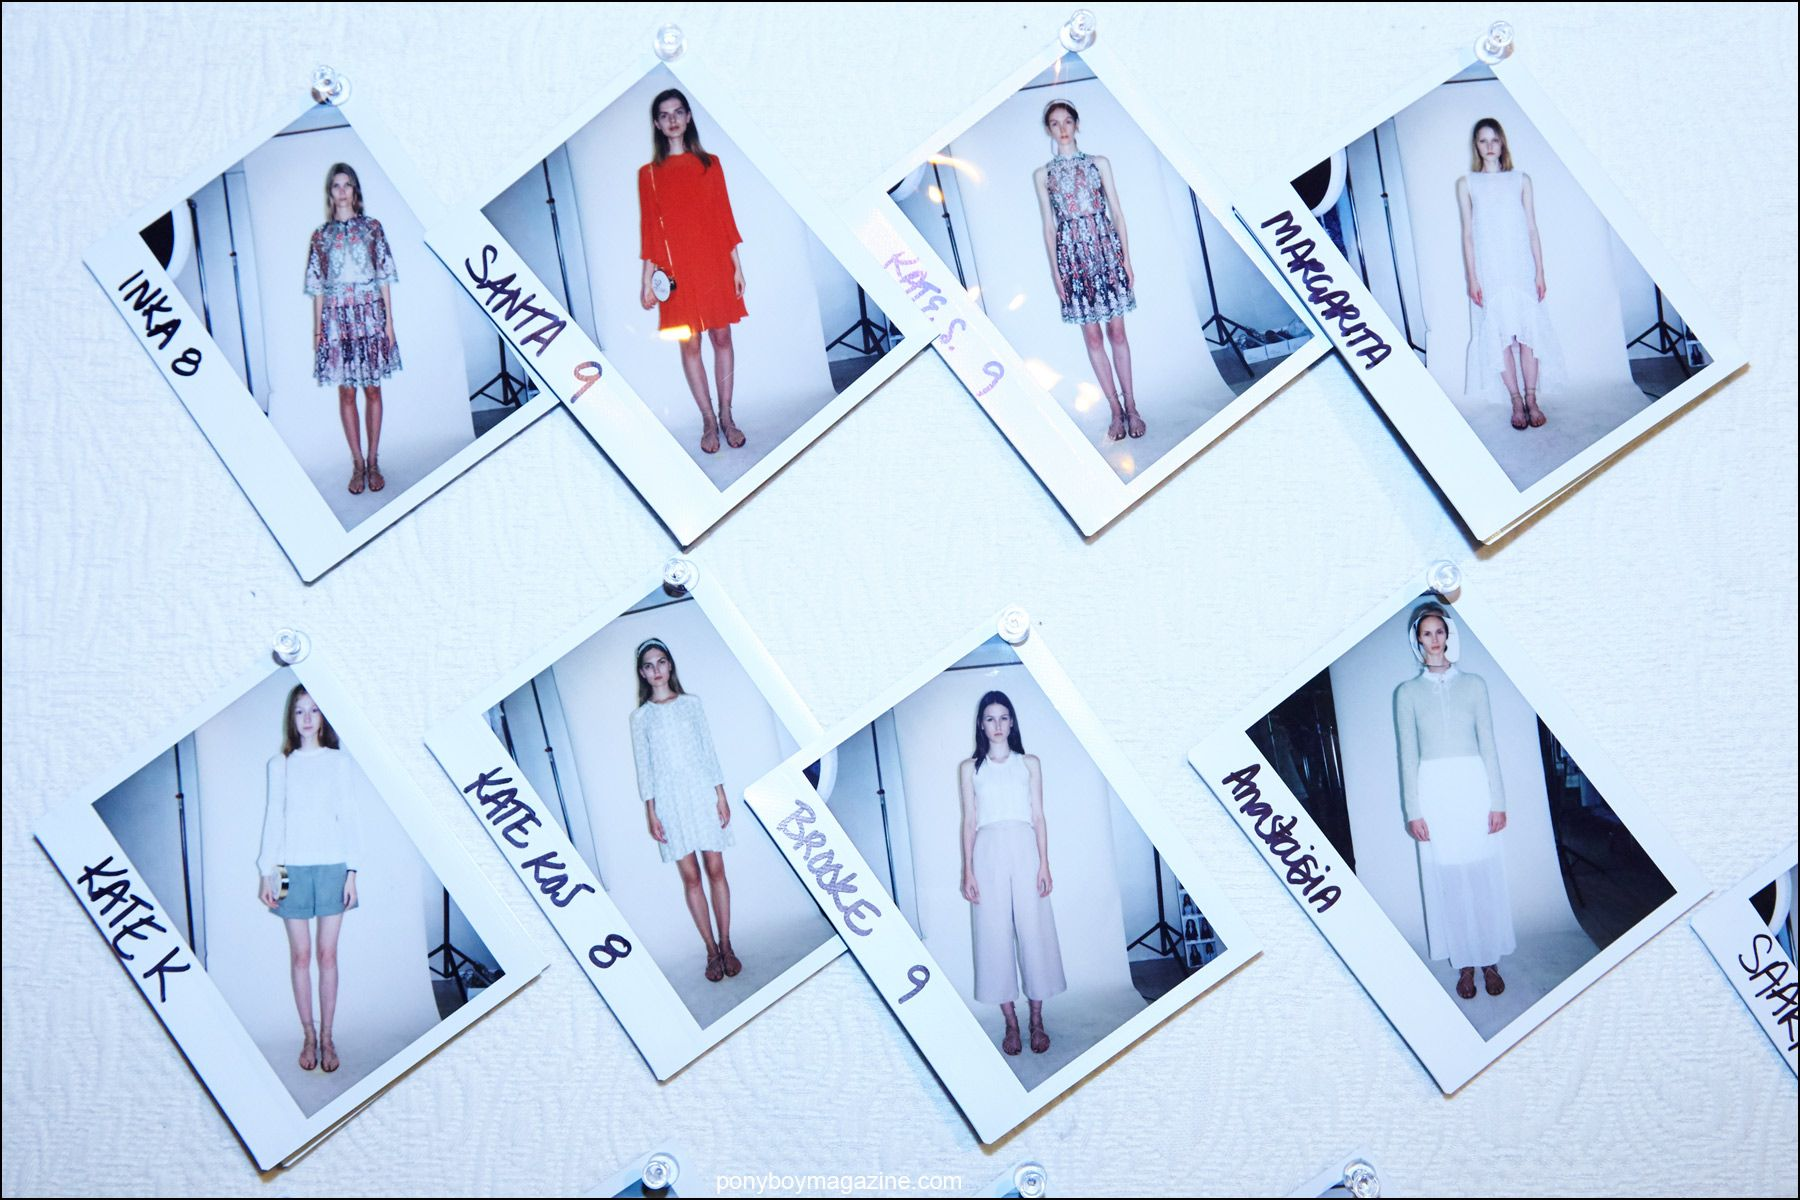 Polaroids of models in Erin Fetherston Spring/Summer 2016 collection. Photograph by Alexander Thompson for Ponyboy magazine NY.